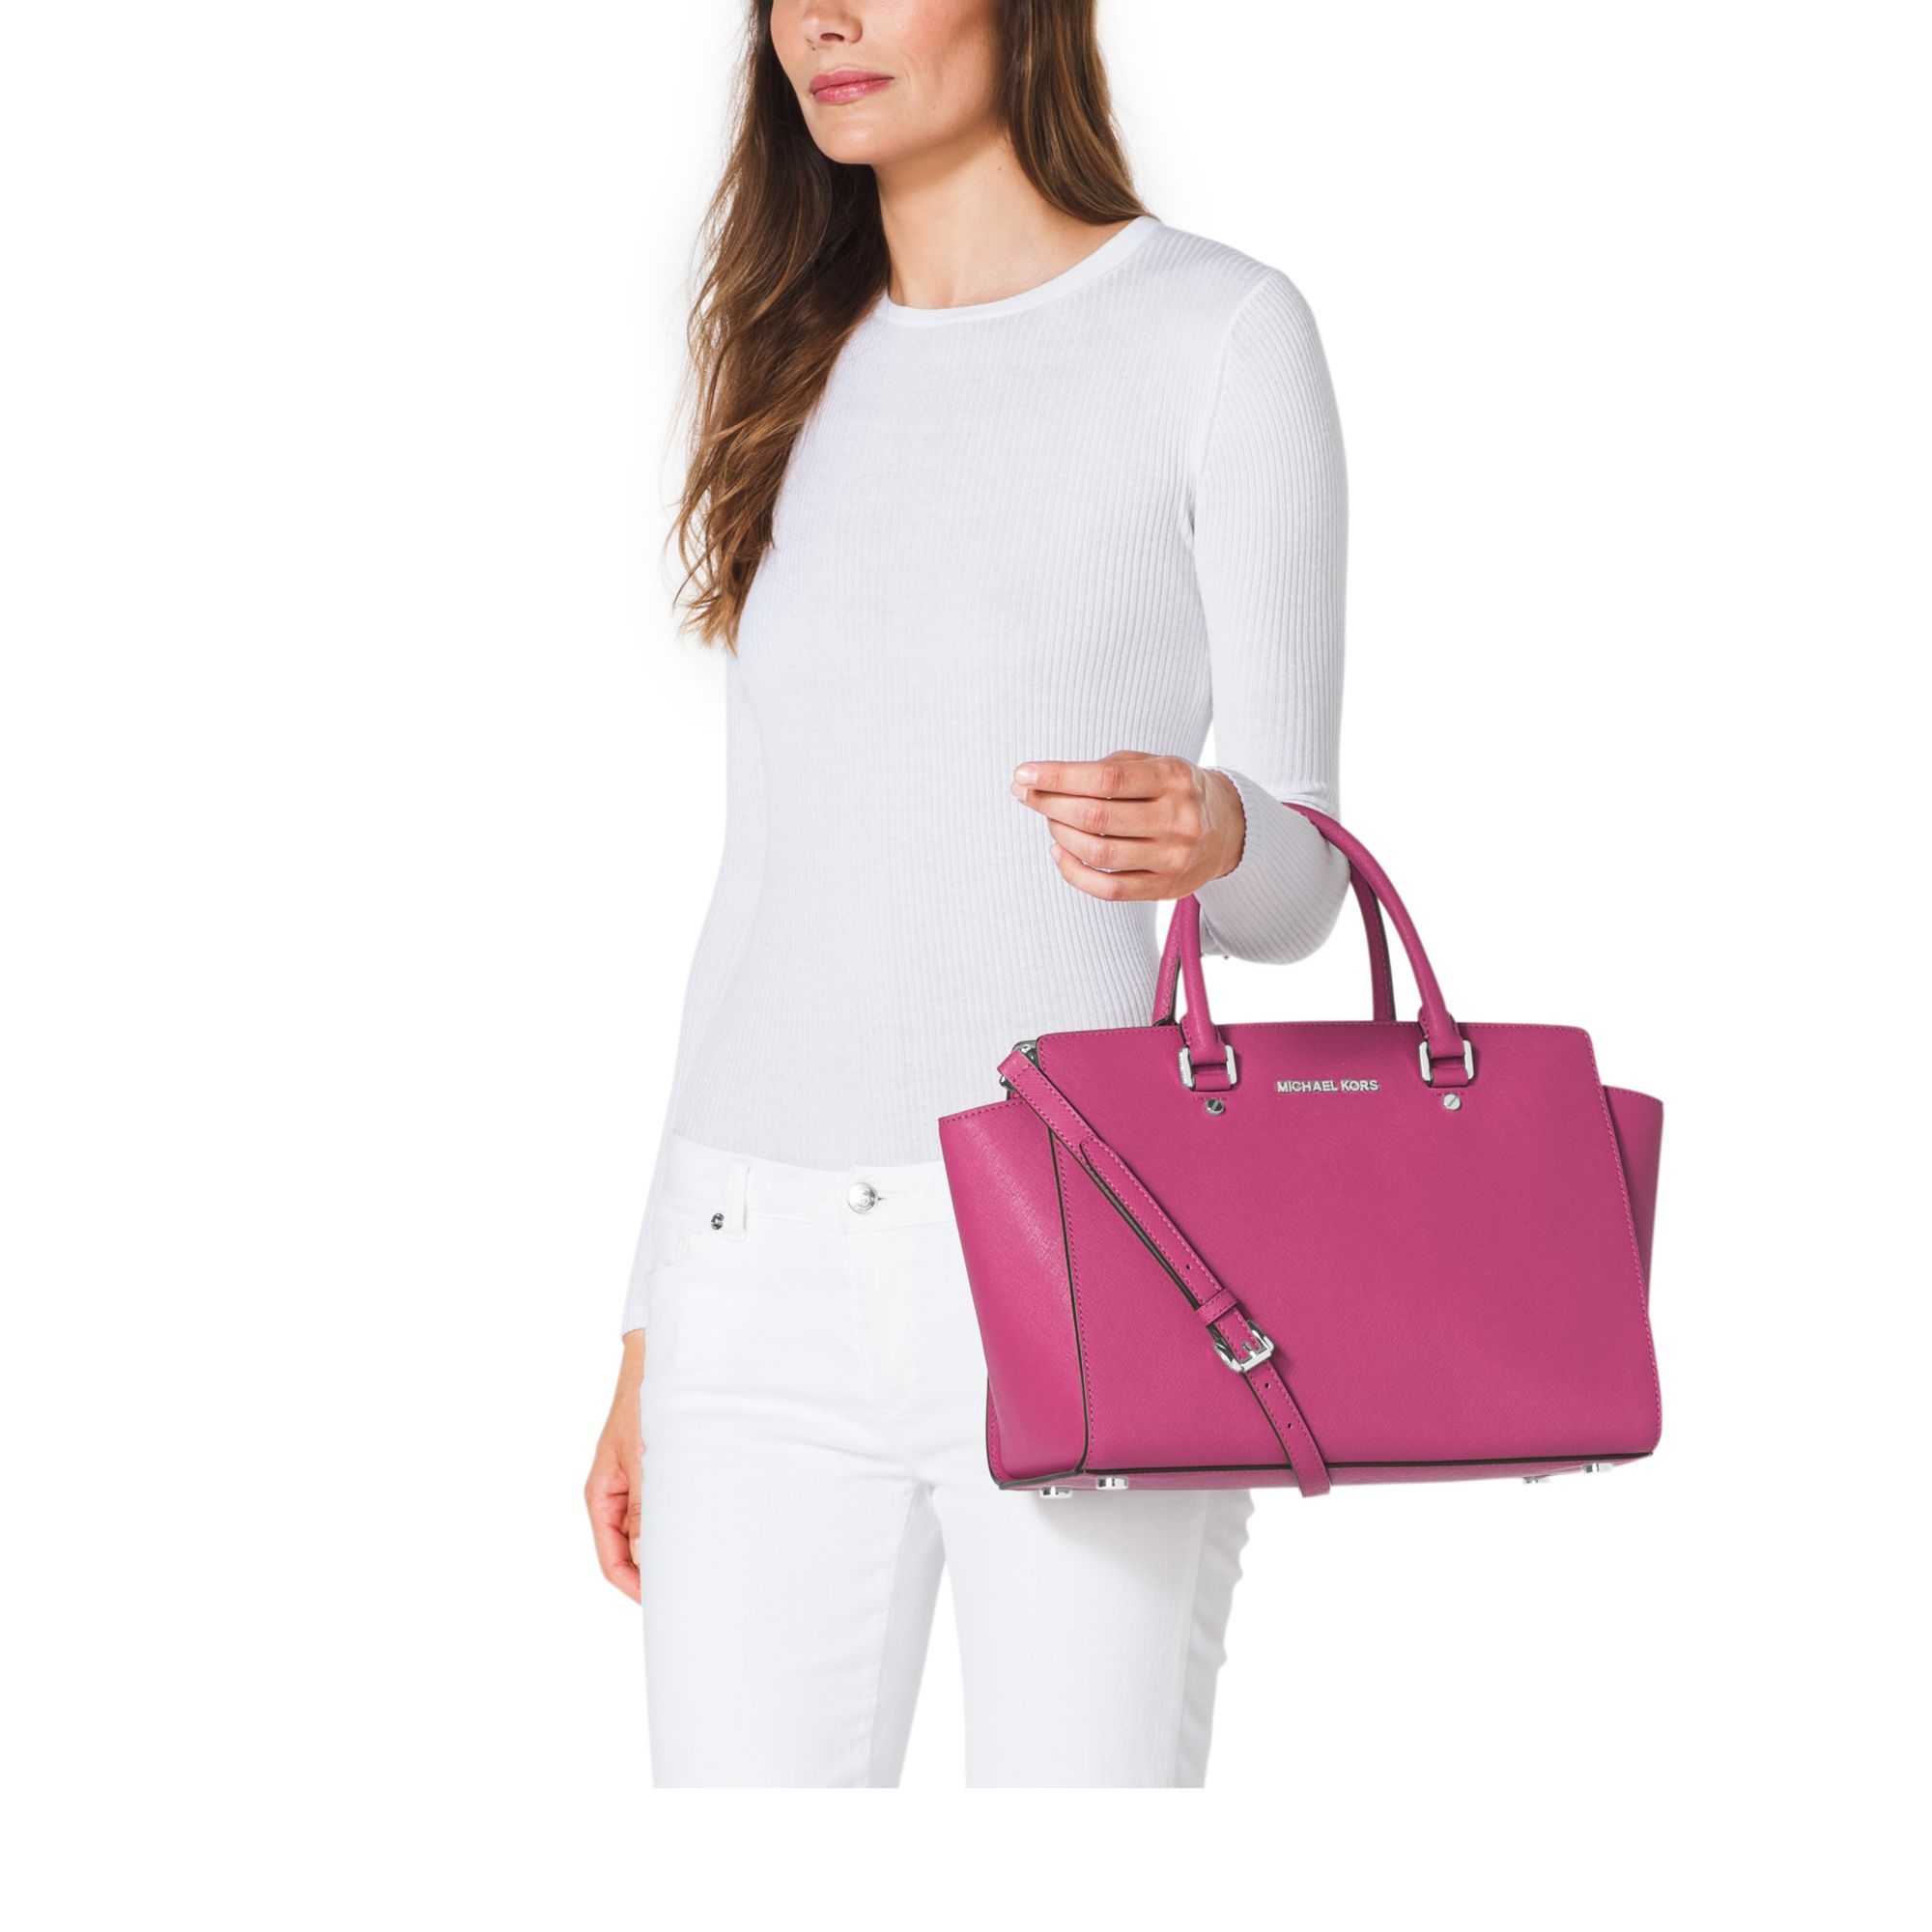 3c6dbc98d Michael Kors Selma Large Saffiano Leather Satchel in Pink - Lyst